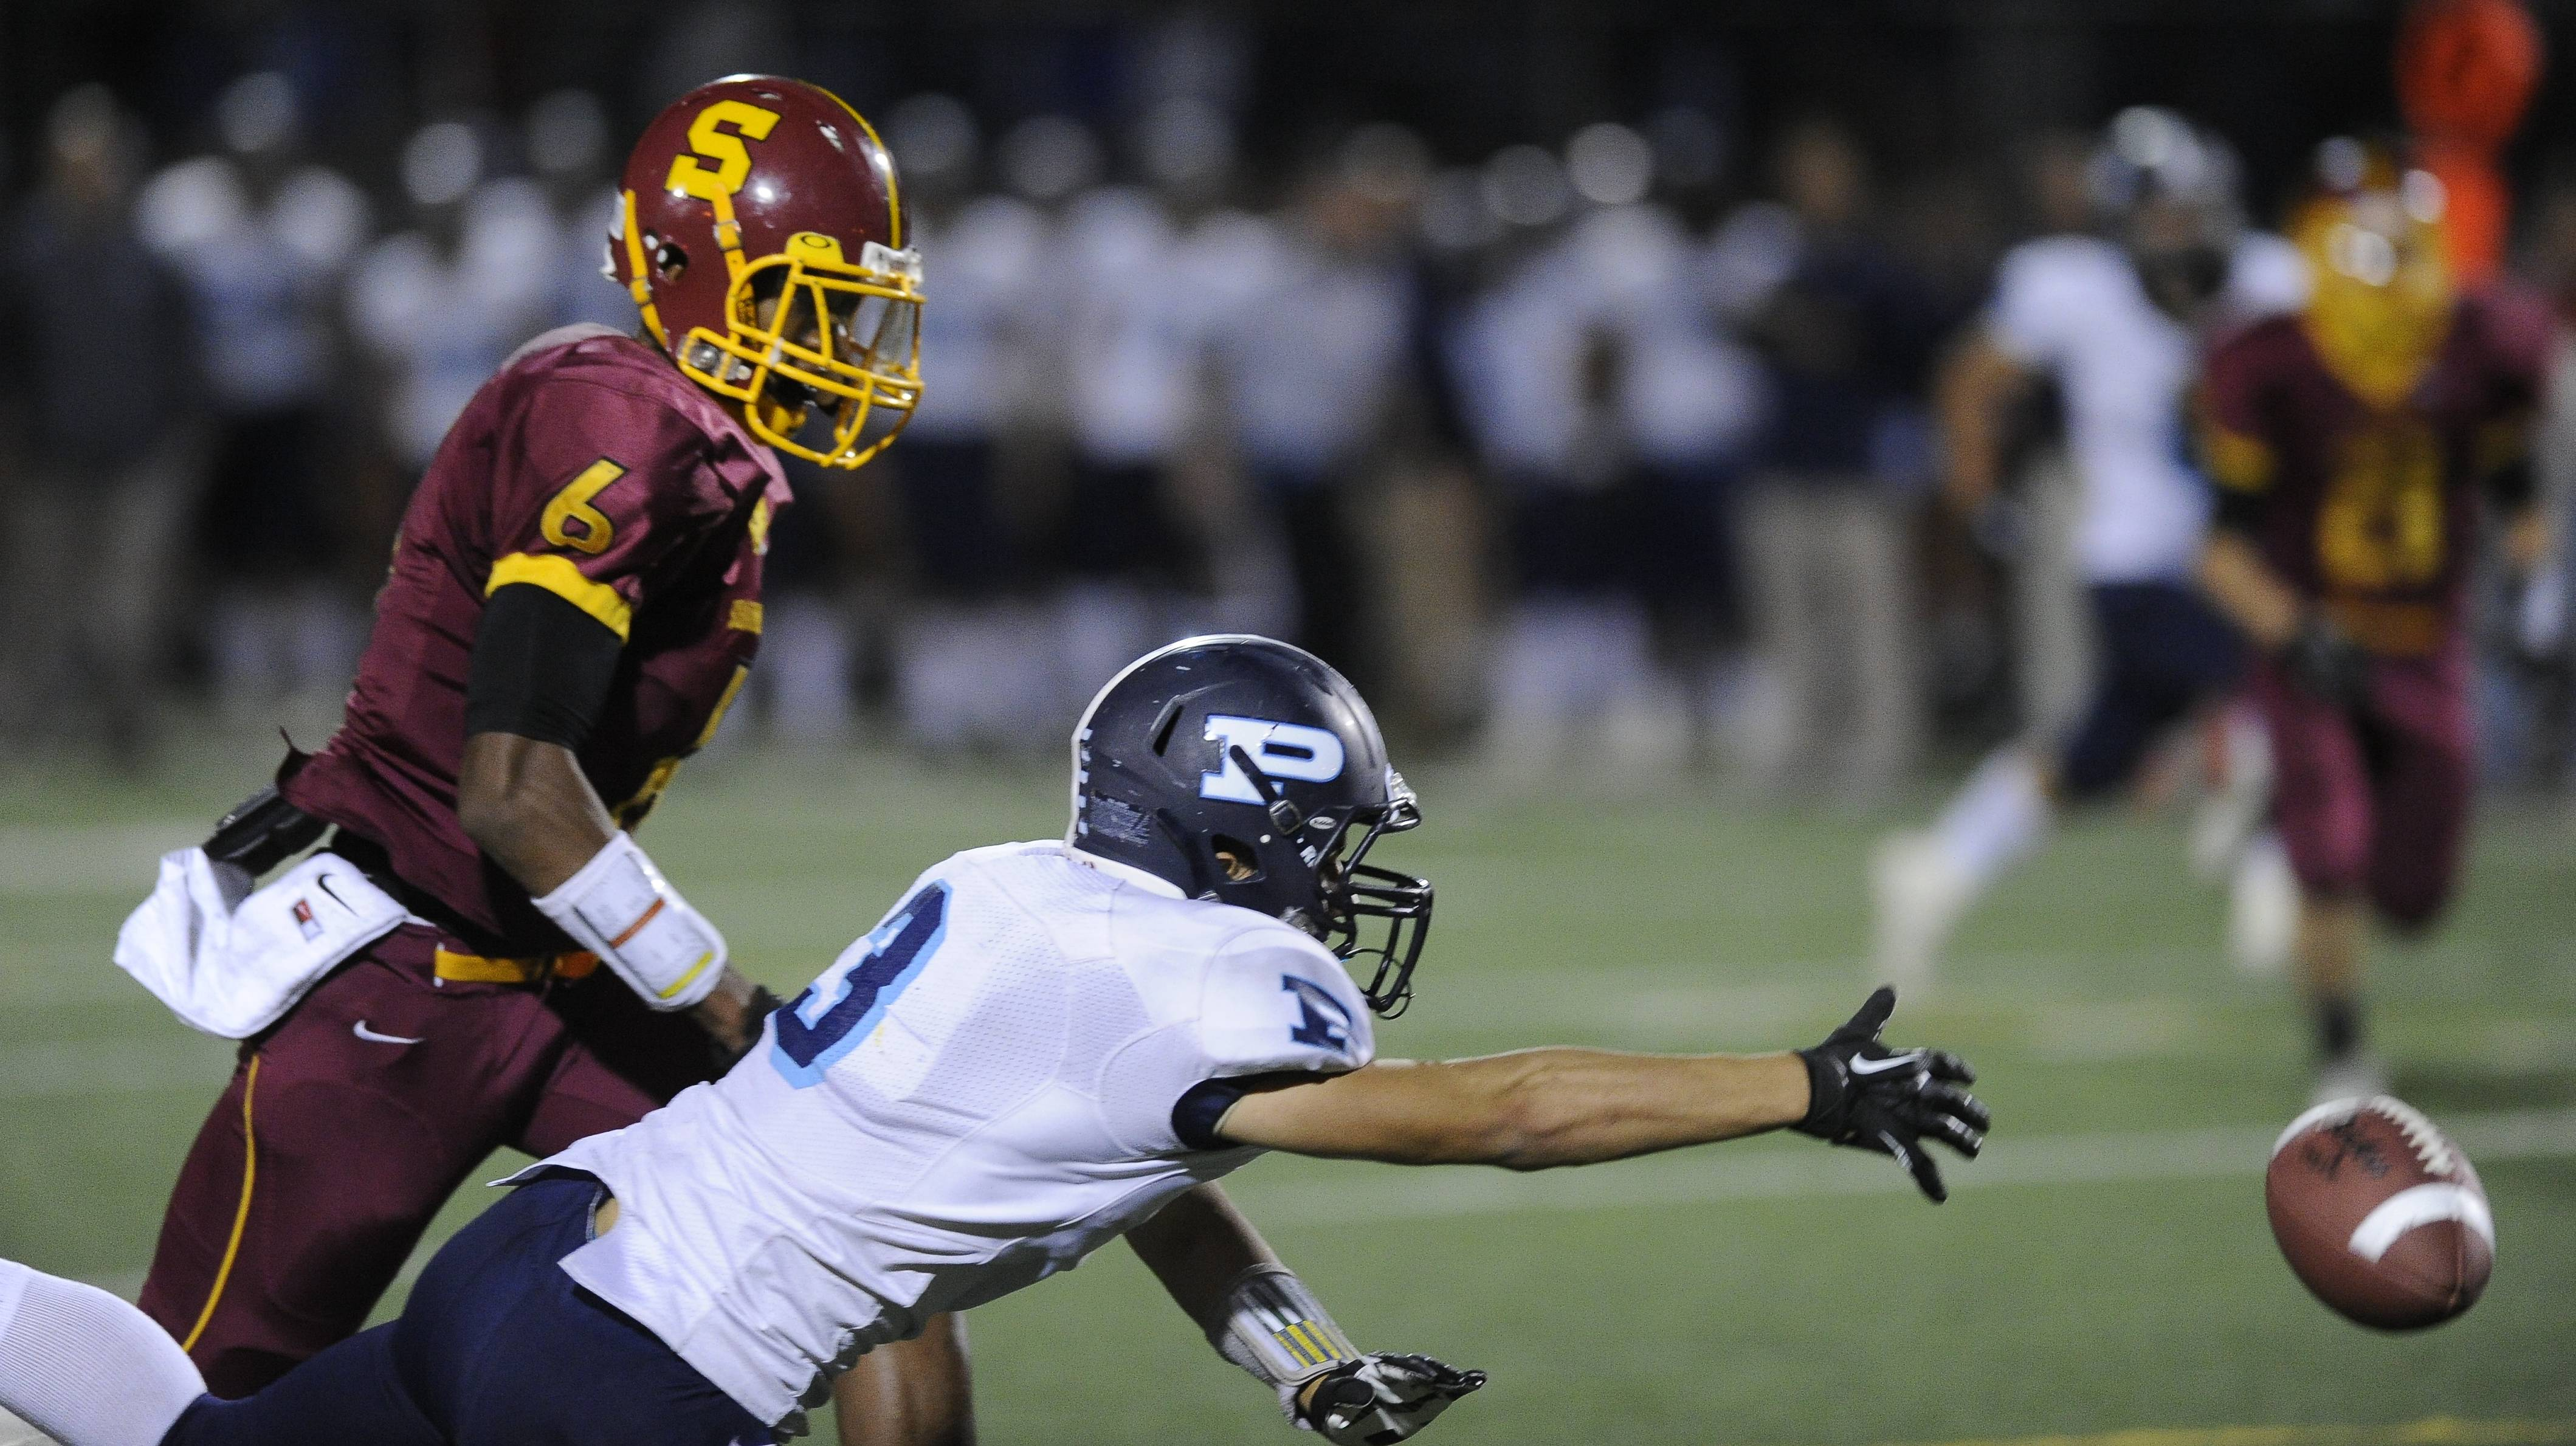 Schaumburg vs. Prospect, Friday, Sept. 14